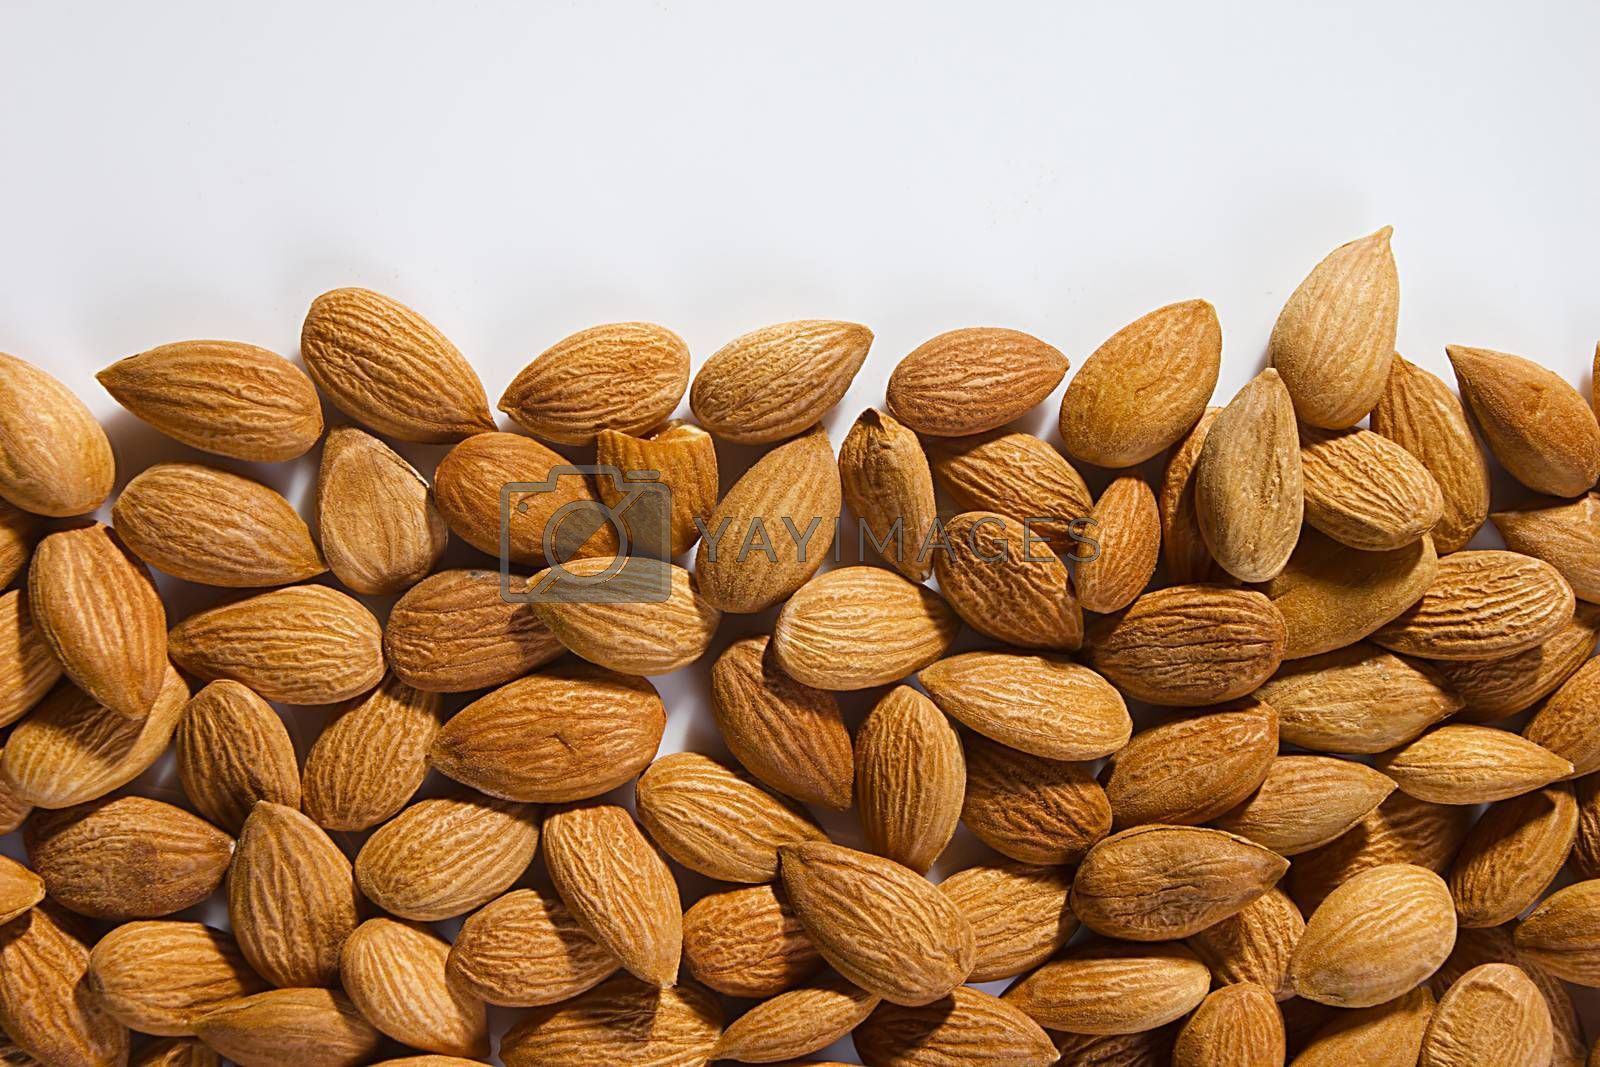 Lots of almond nuts on white background